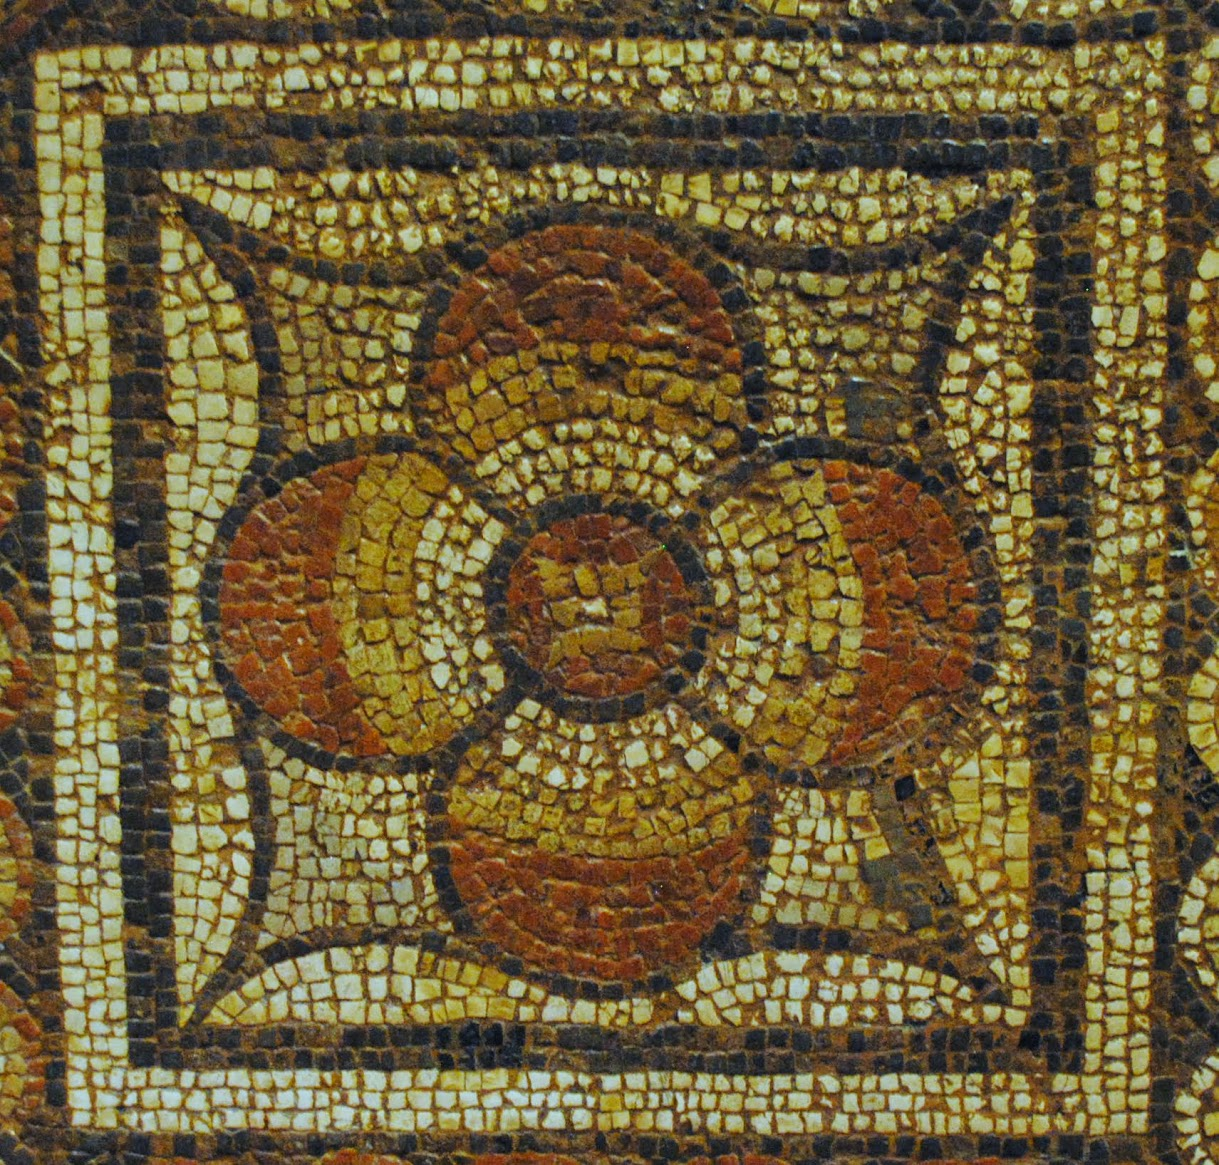 My Photos: England -- Mosaics